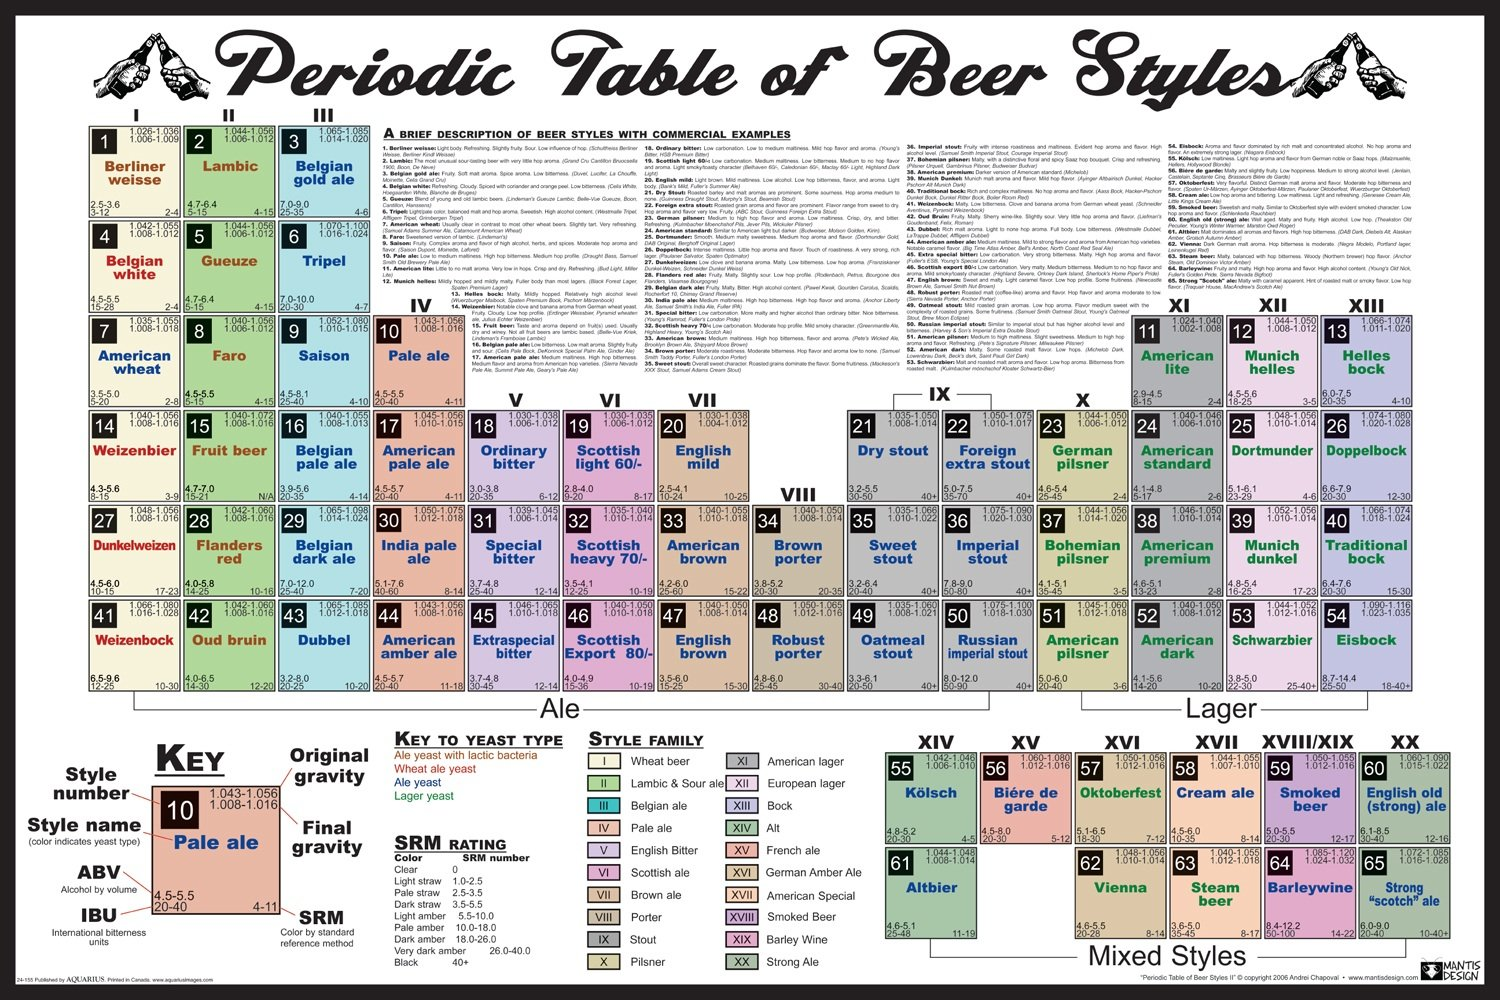 Amazon nmr 24155 periodic table of beer styles decorative amazon nmr 24155 periodic table of beer styles decorative poster prints posters prints gamestrikefo Images